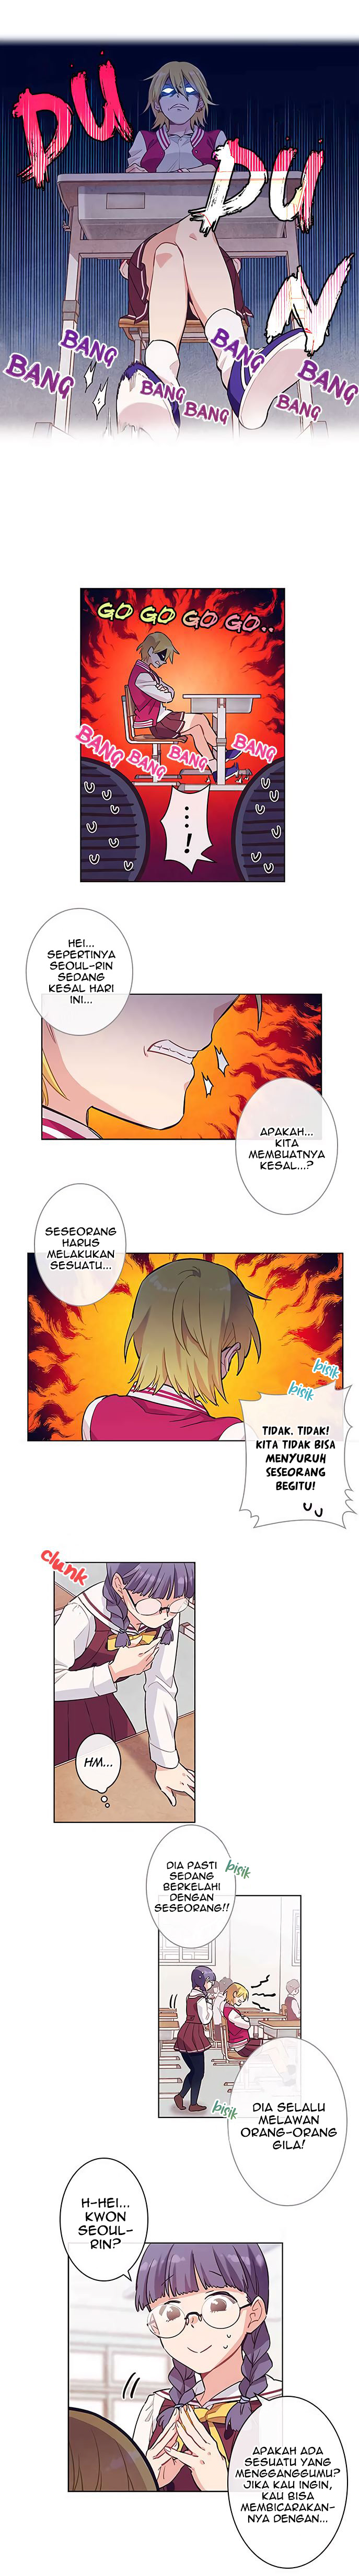 The Strongest Girl Chapter 26